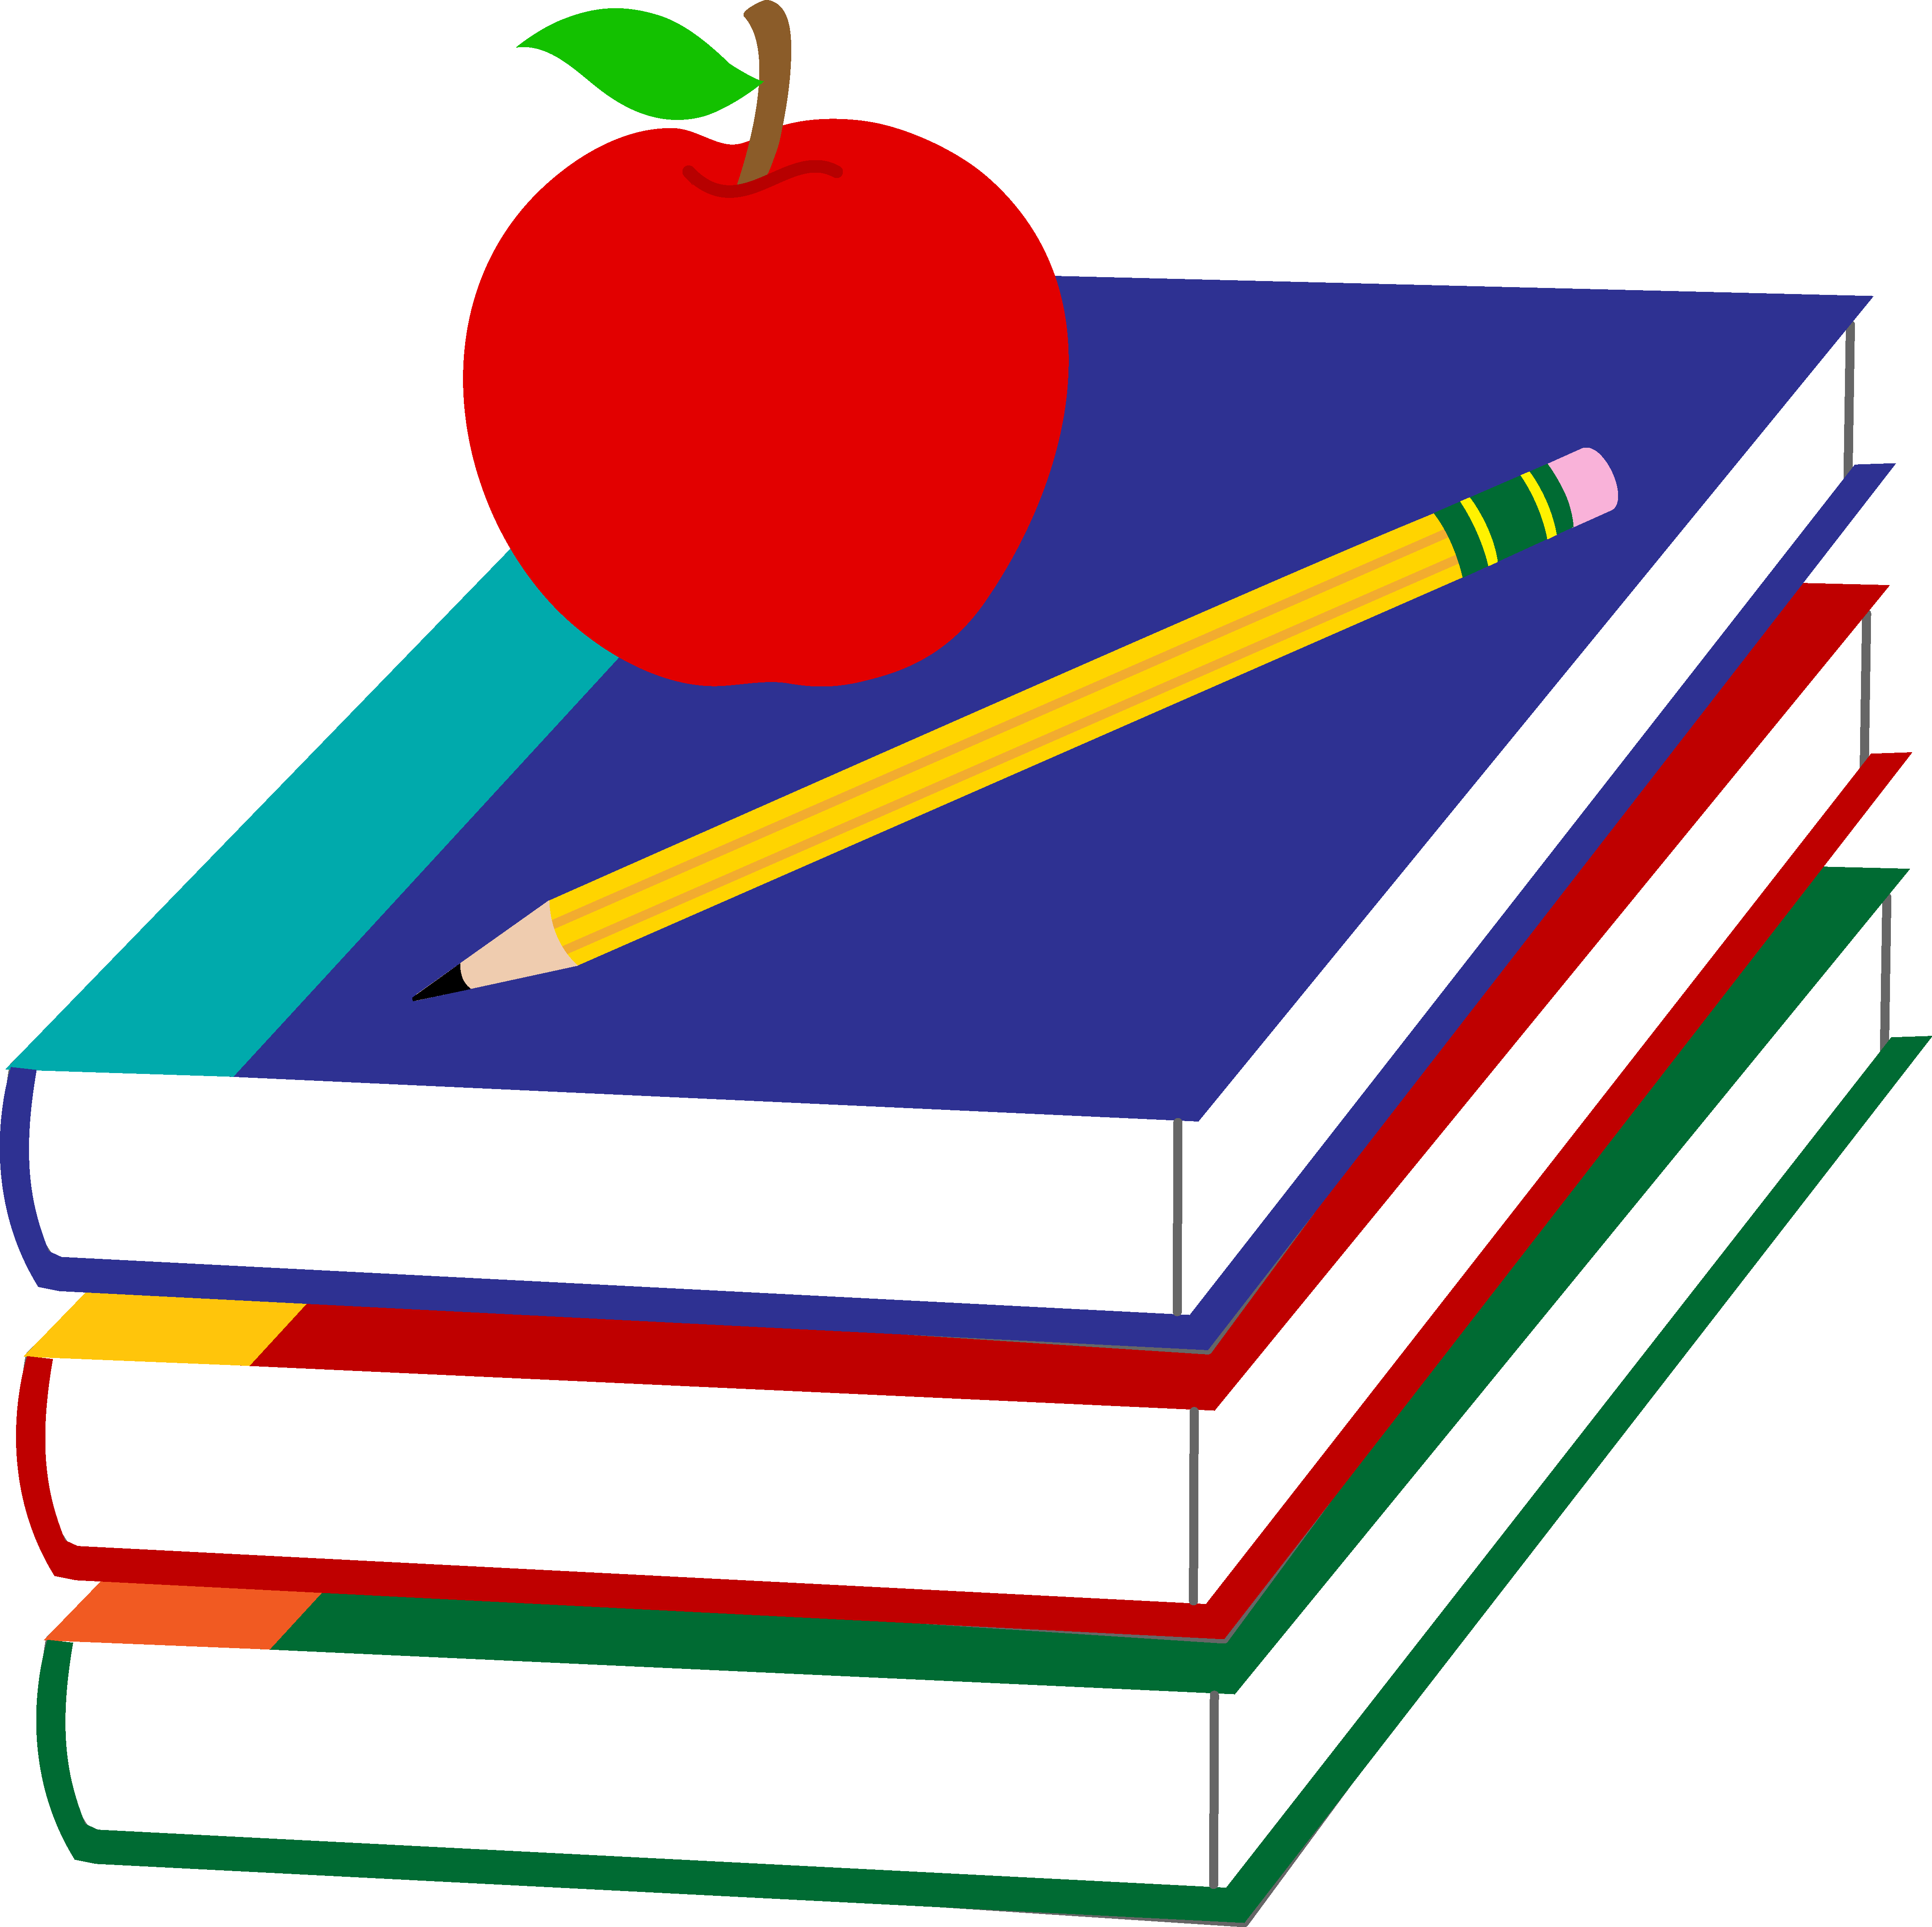 Geography clipart book apple. Teacher panda free images